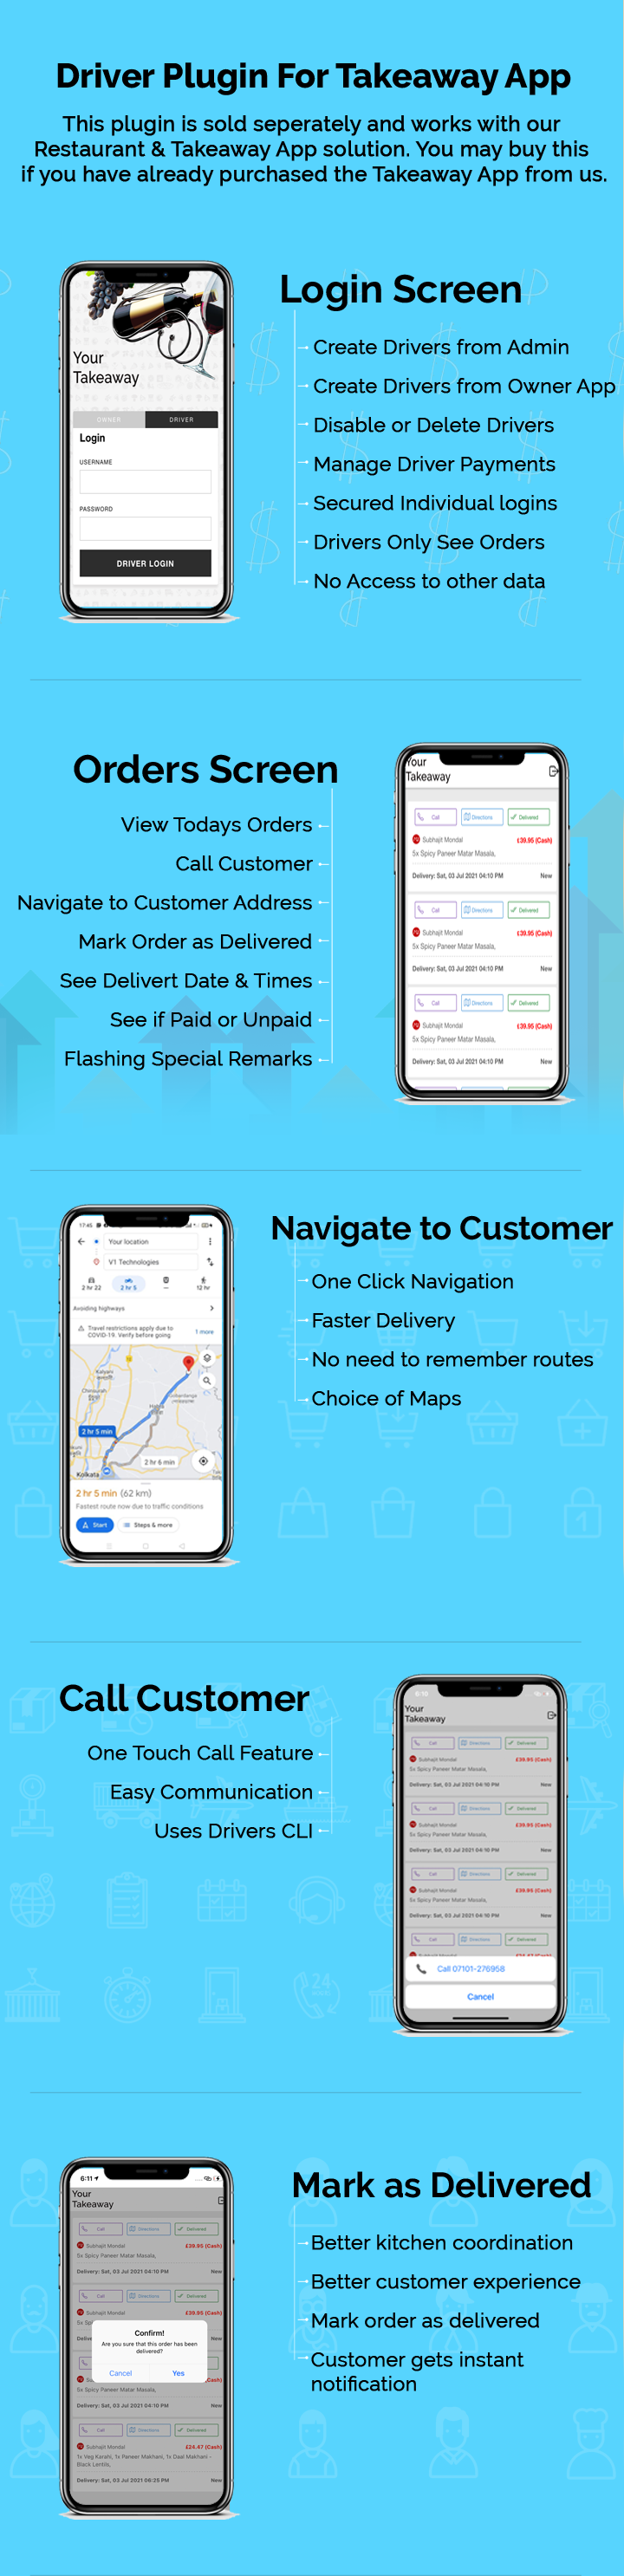 Driver App Login - Drivers can View Orders, Get Directions, Navigate and Mark Order as Delivered - 8